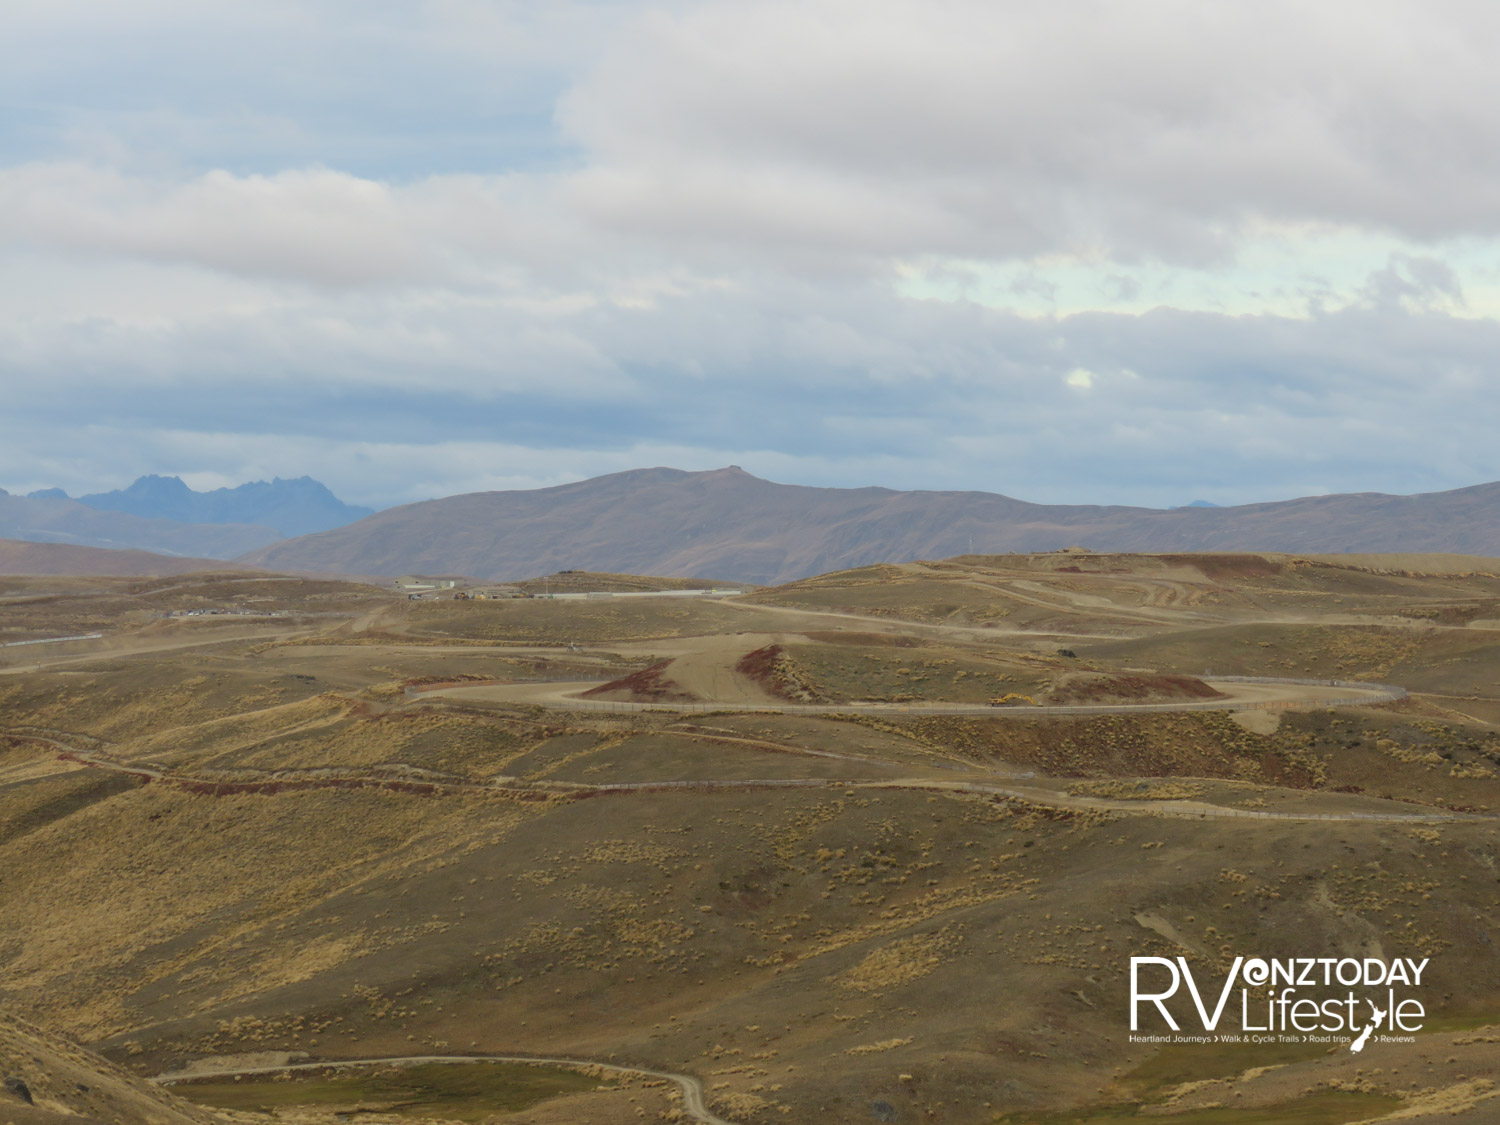 Looking back at the Southern Hemisphere Proving Grounds from the Pisa Range